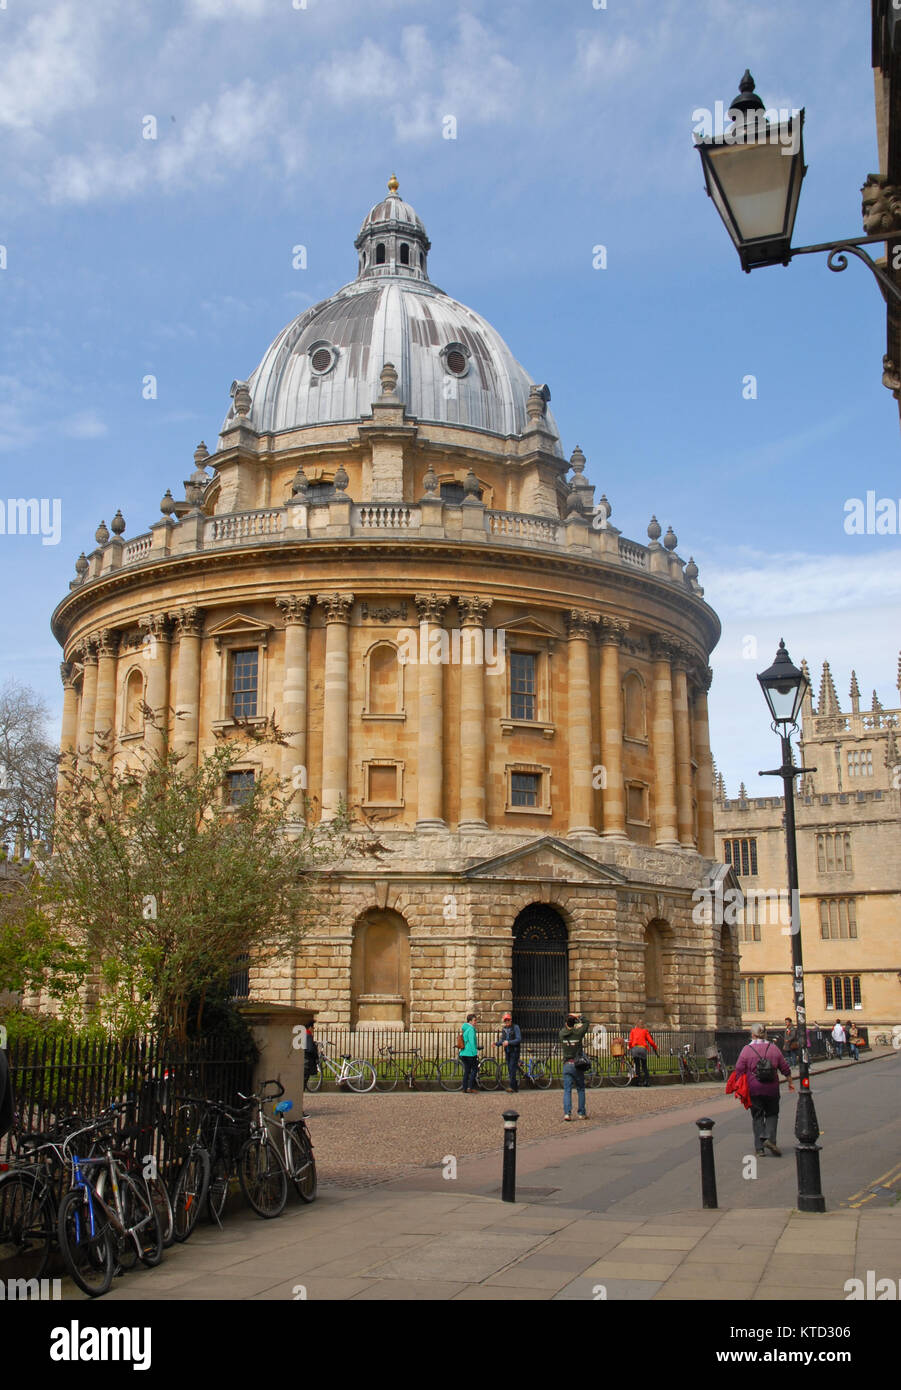 Oxford, United Kingdom - April 12, 2015: Radcliffe Square photographed from Catte Street - Stock Image